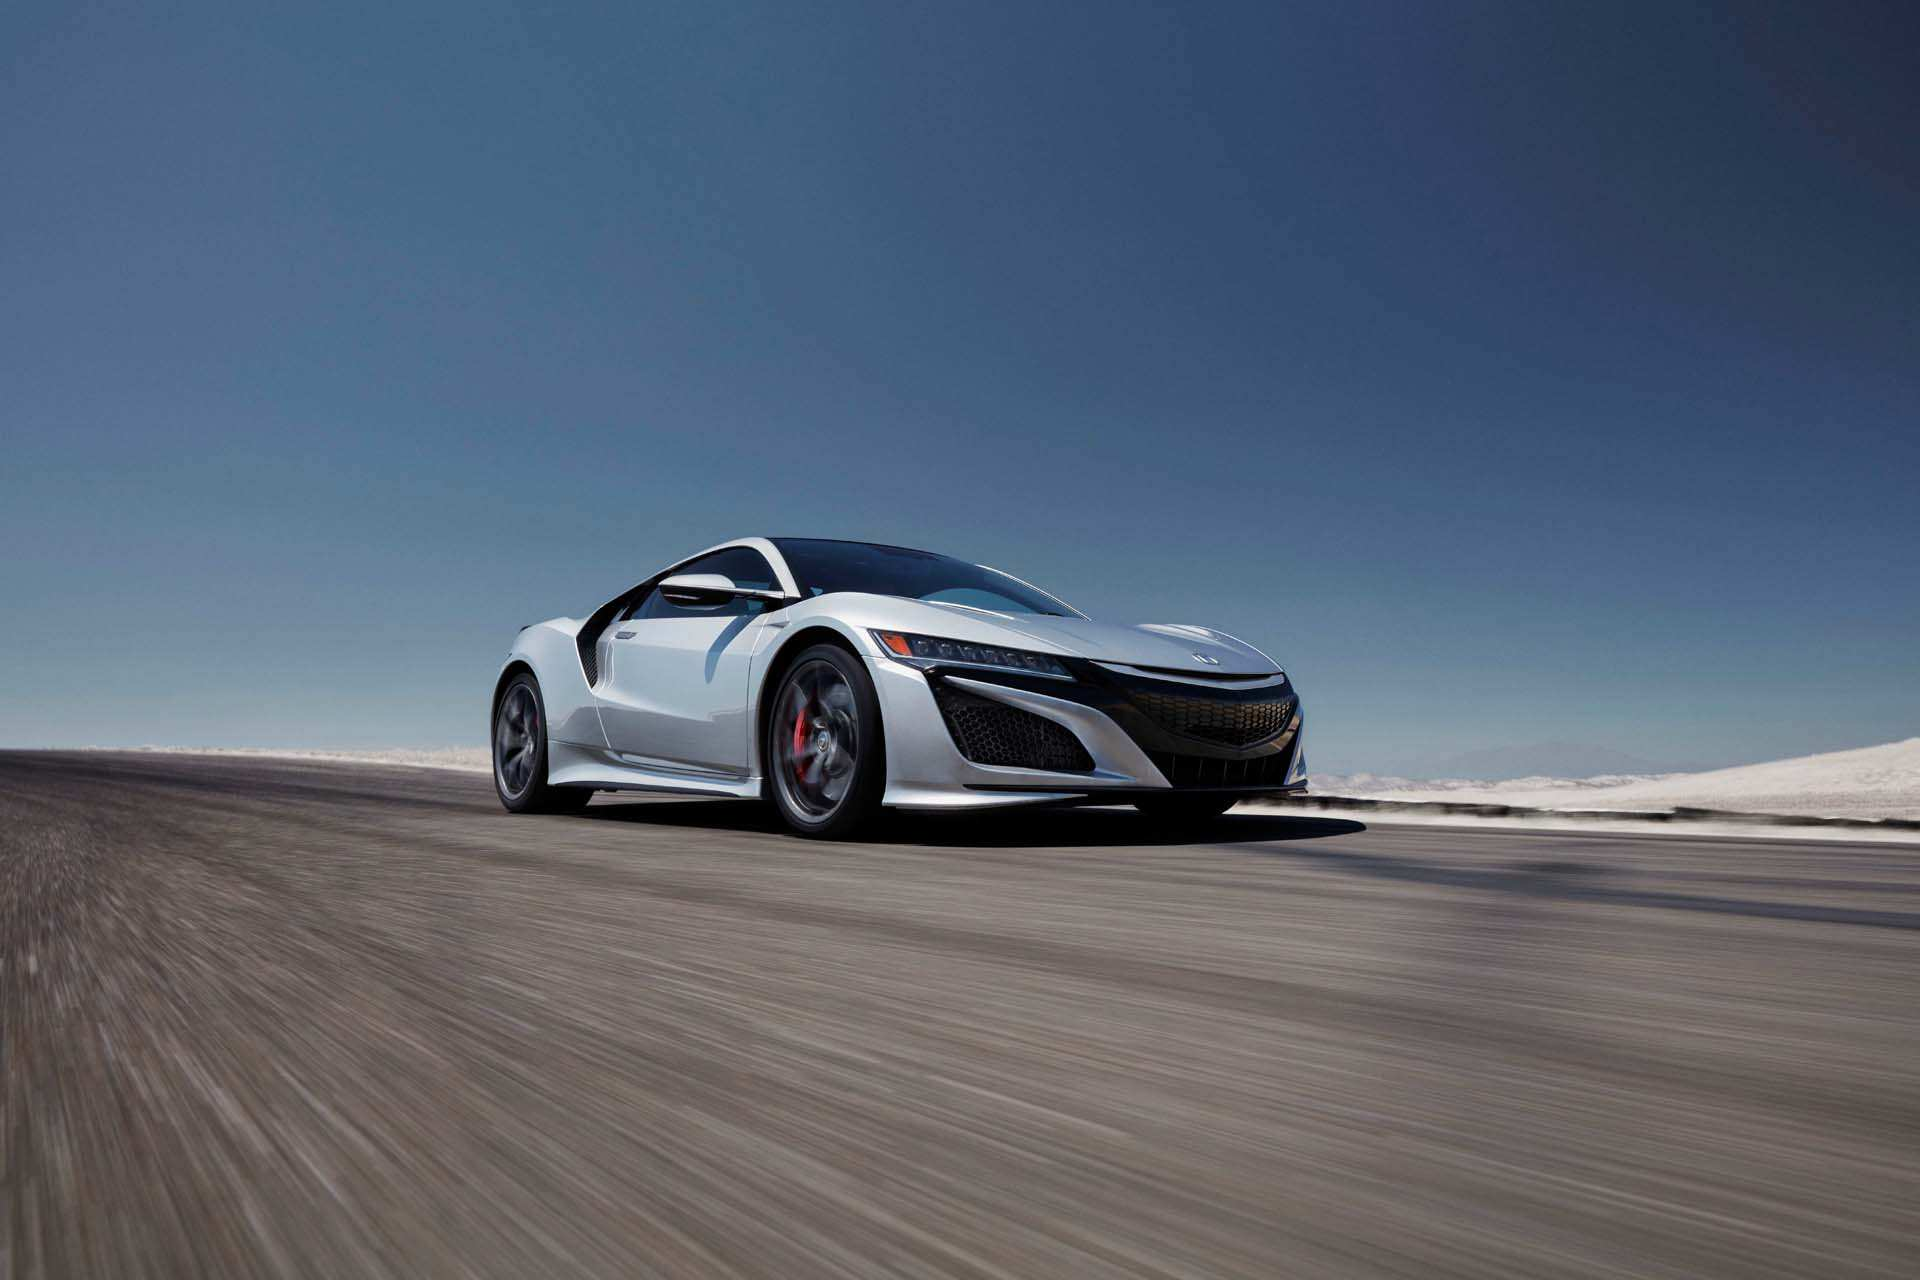 25 Gallery of Acura Nsx 2020 Price Spy Shoot by Acura Nsx 2020 Price